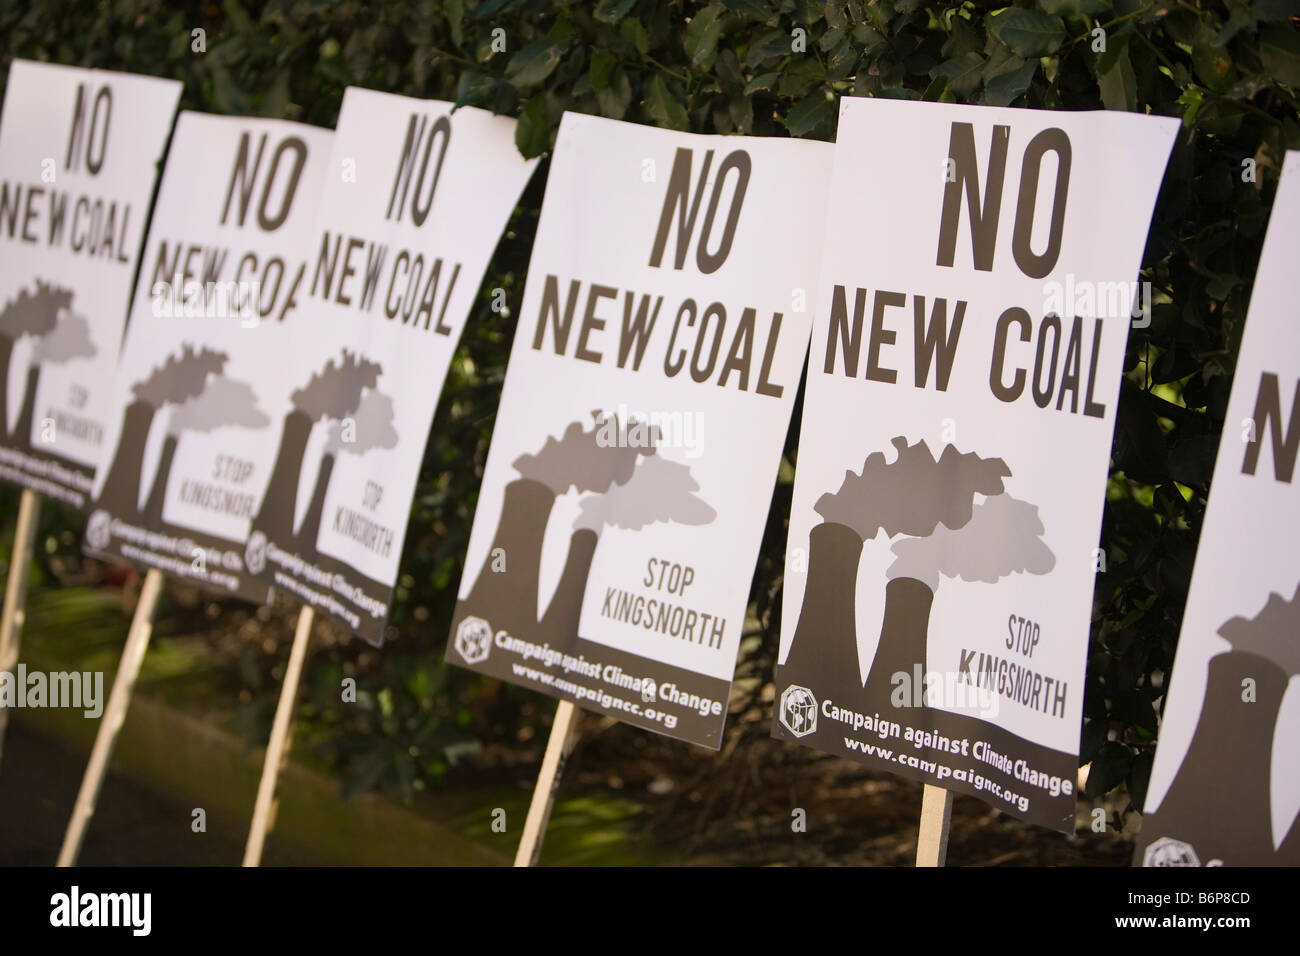 Protest banners at a climate change rally in London December 2008 - Stock Image